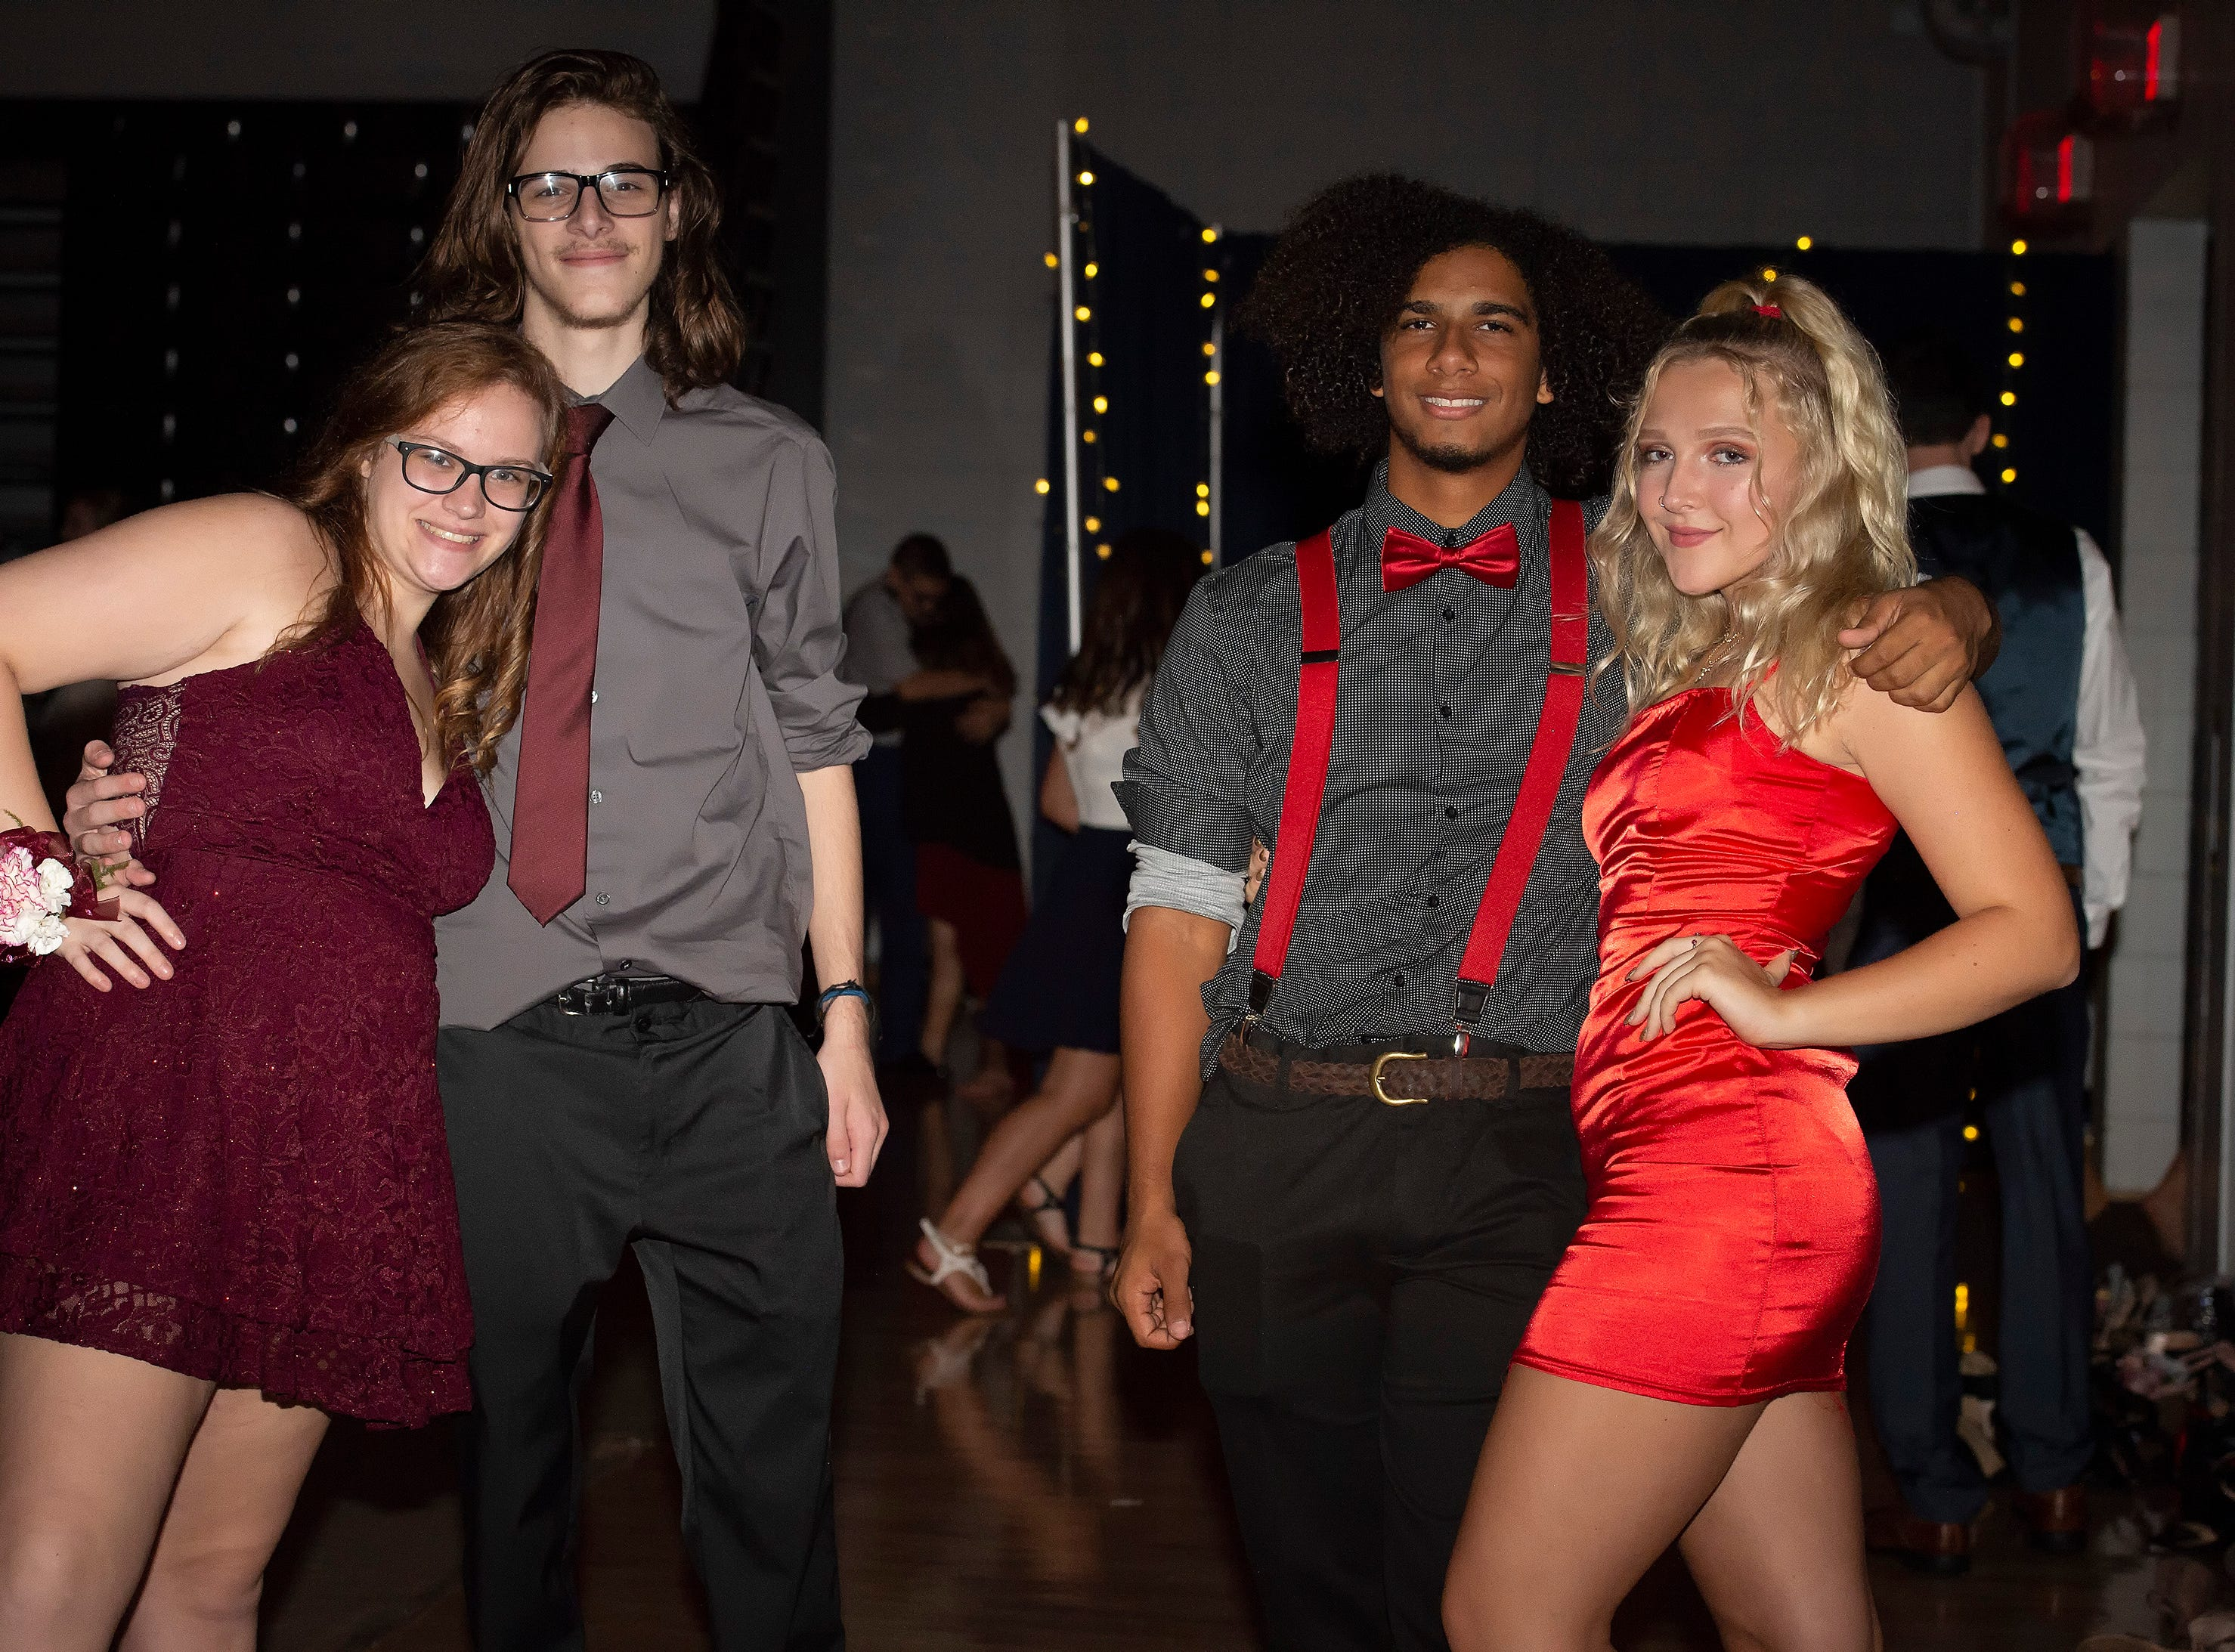 Students and their guest attend the Sussex Tech High School homecoming dance Saturday, Sept 29, 2018 at Sussex Tech High School.